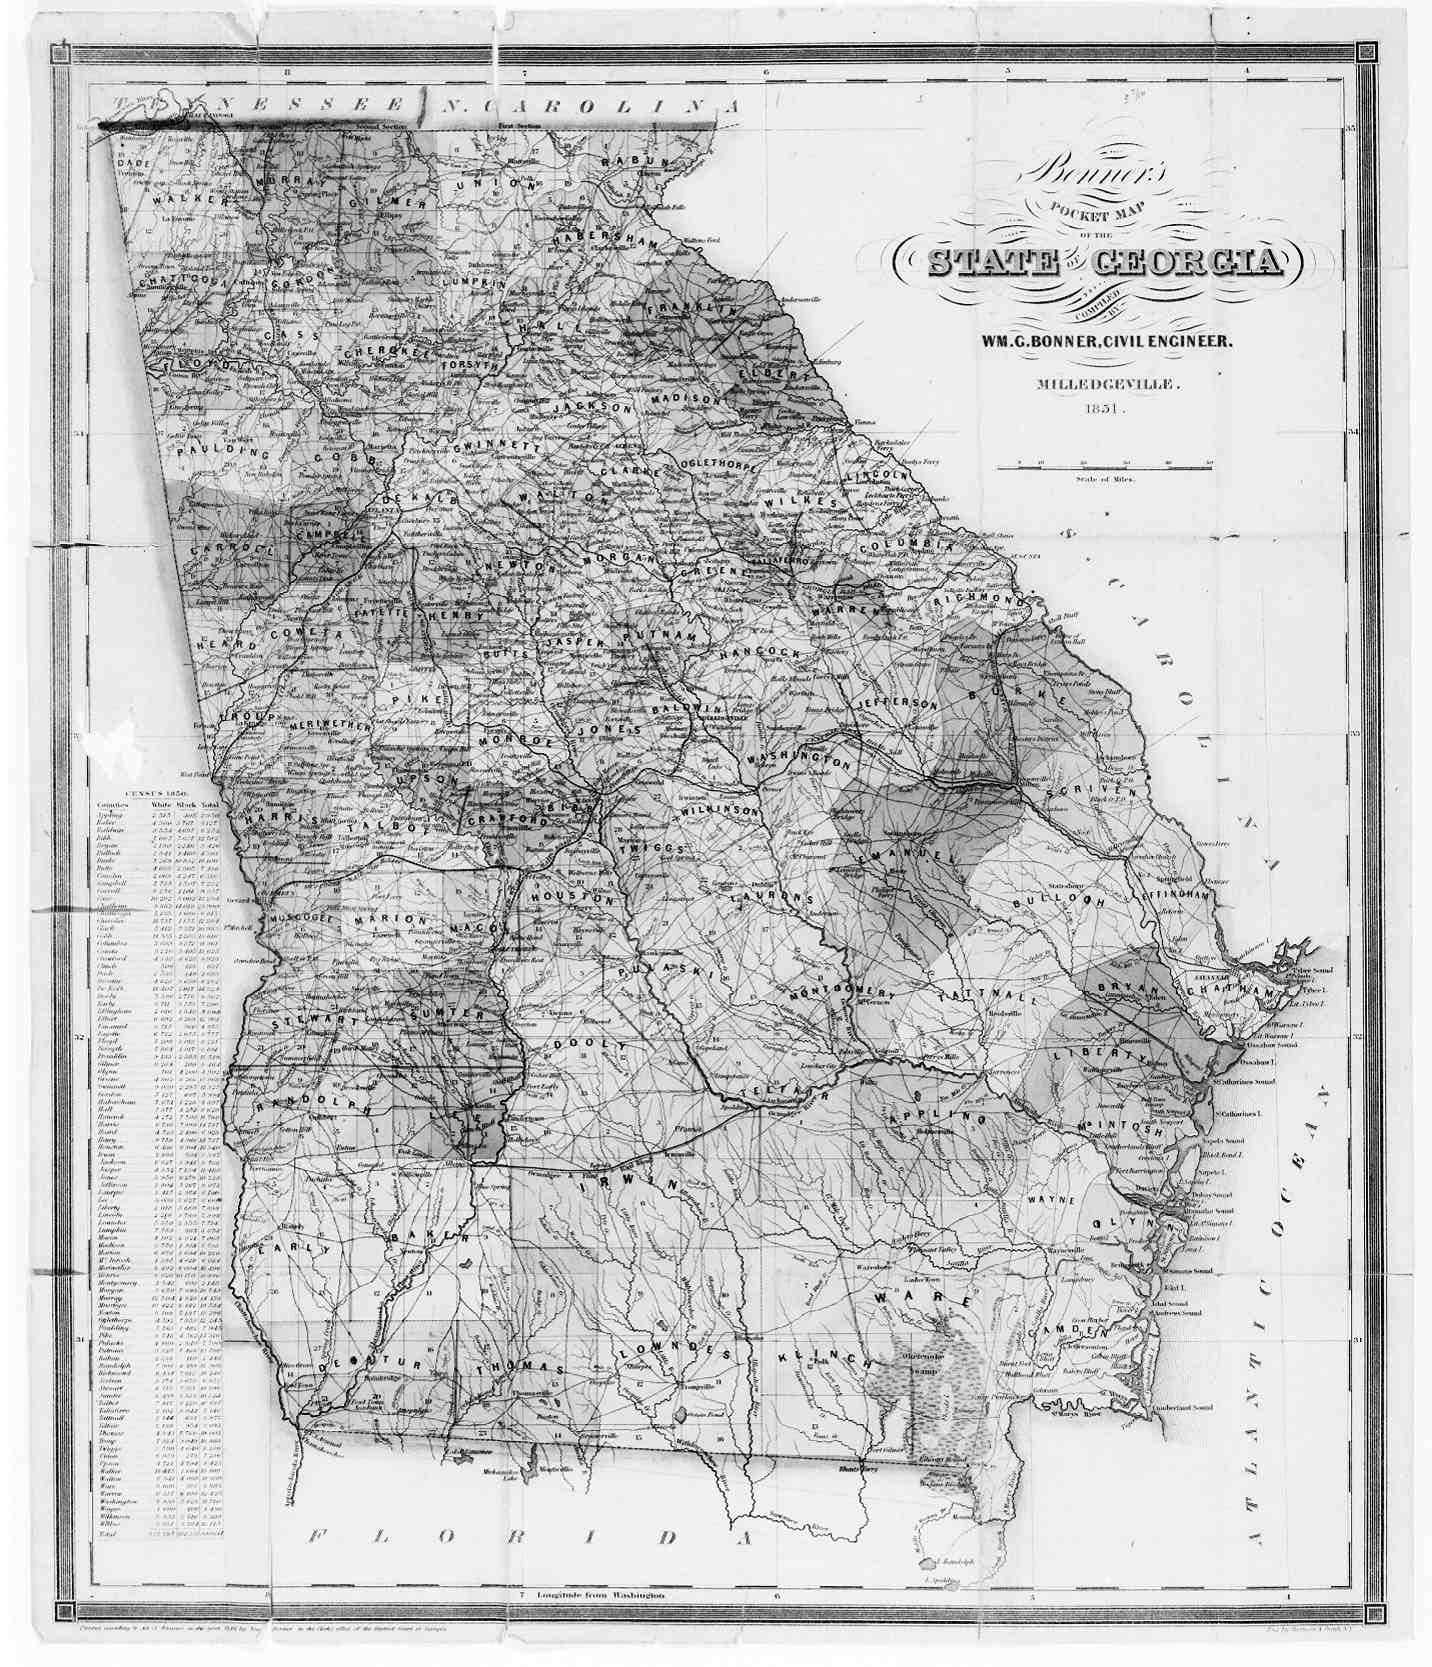 Clayton Links - Maps of georgia usa